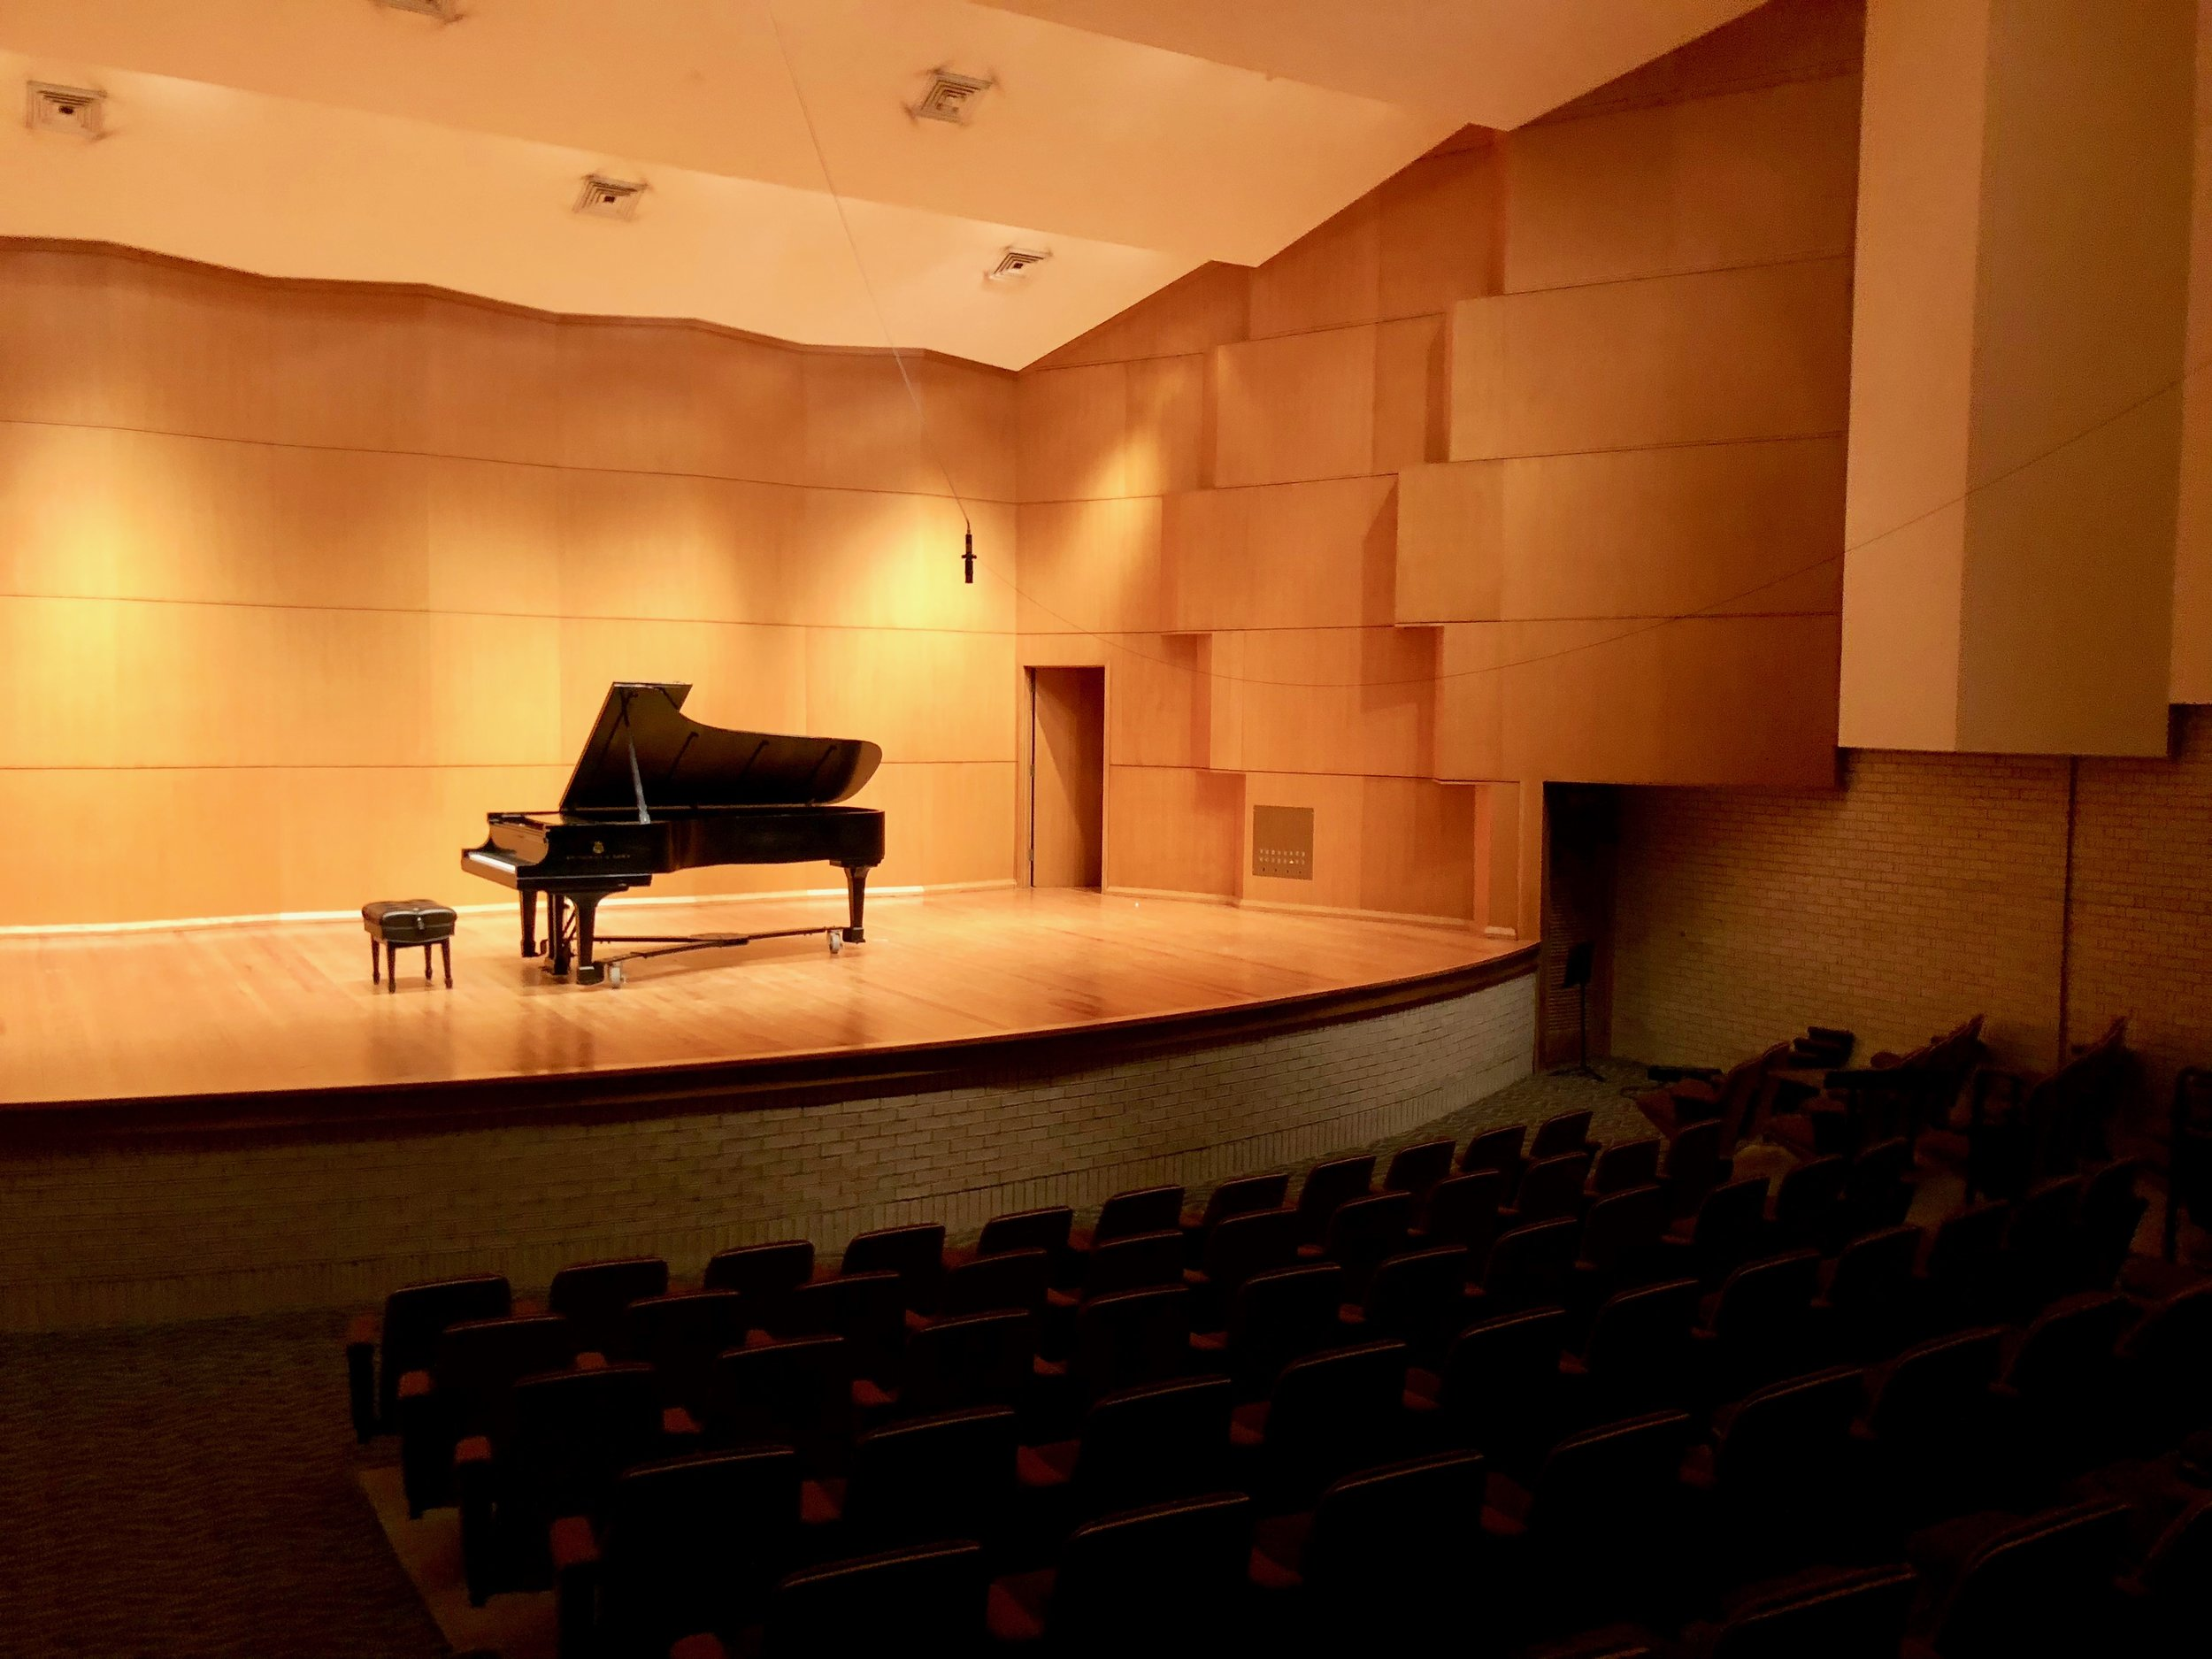 the recital hall at LSU - the seats are purple & gold